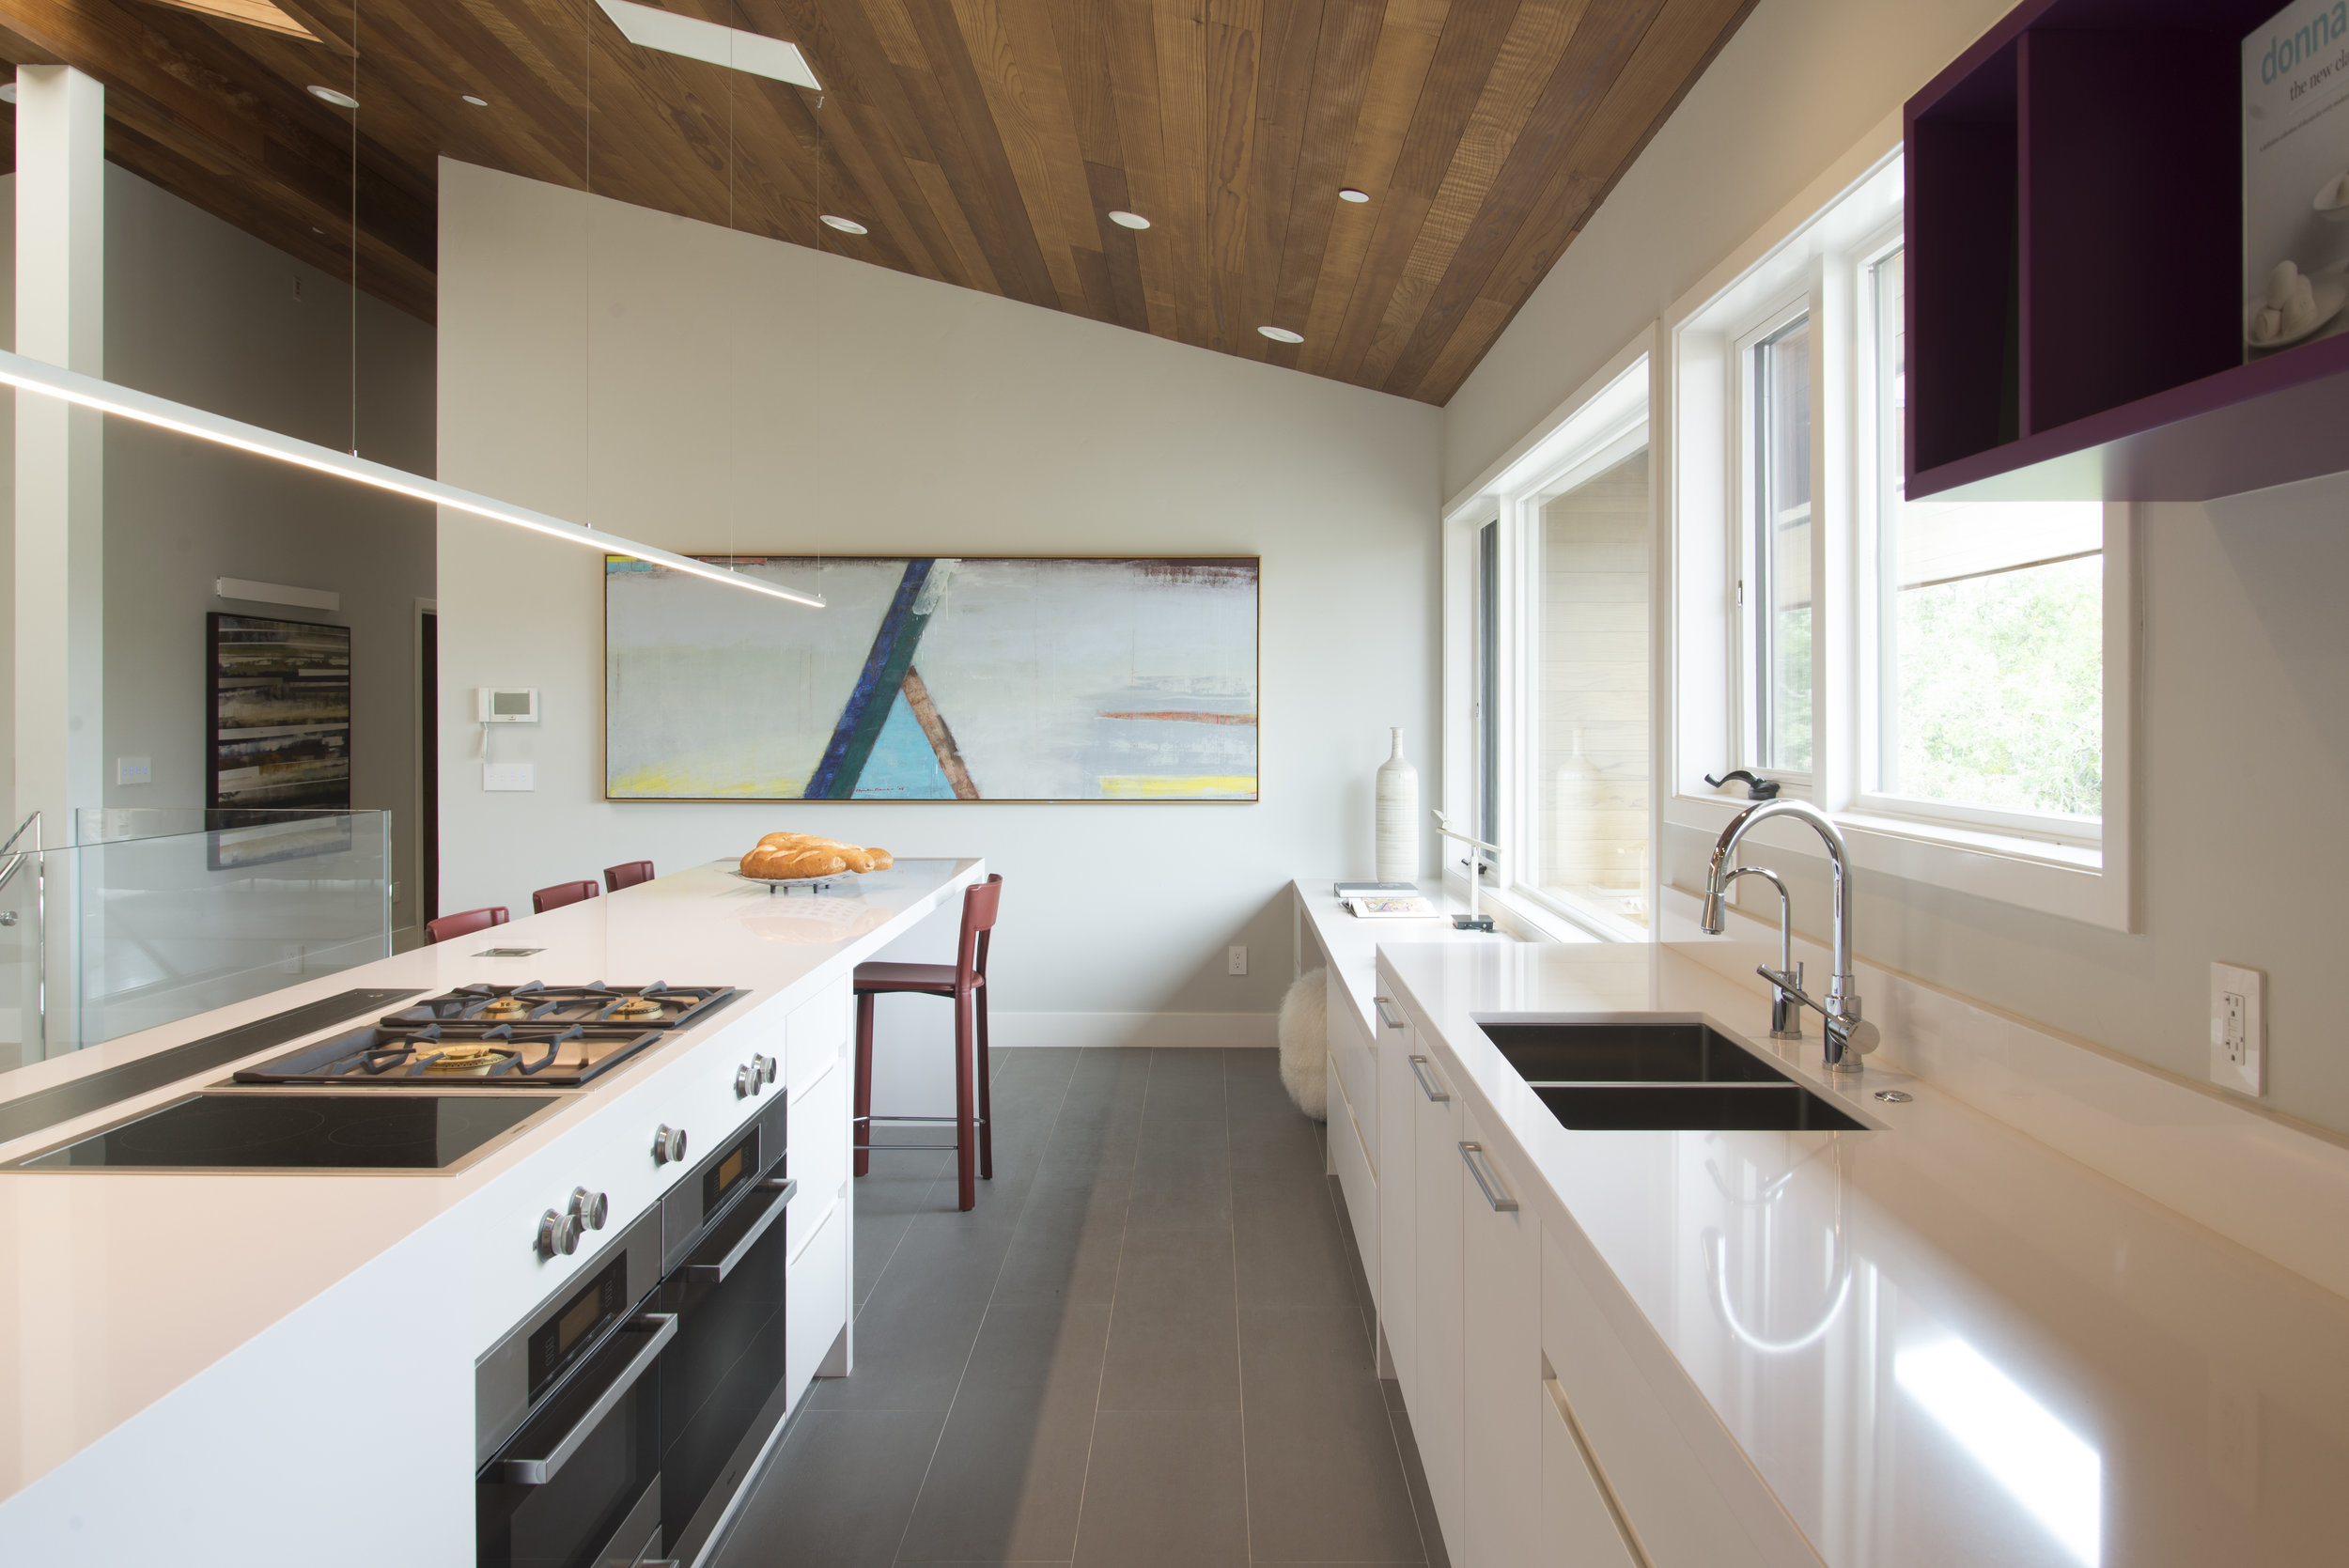 white kitchen with an island, red barstools and a big abstract painting on the wall